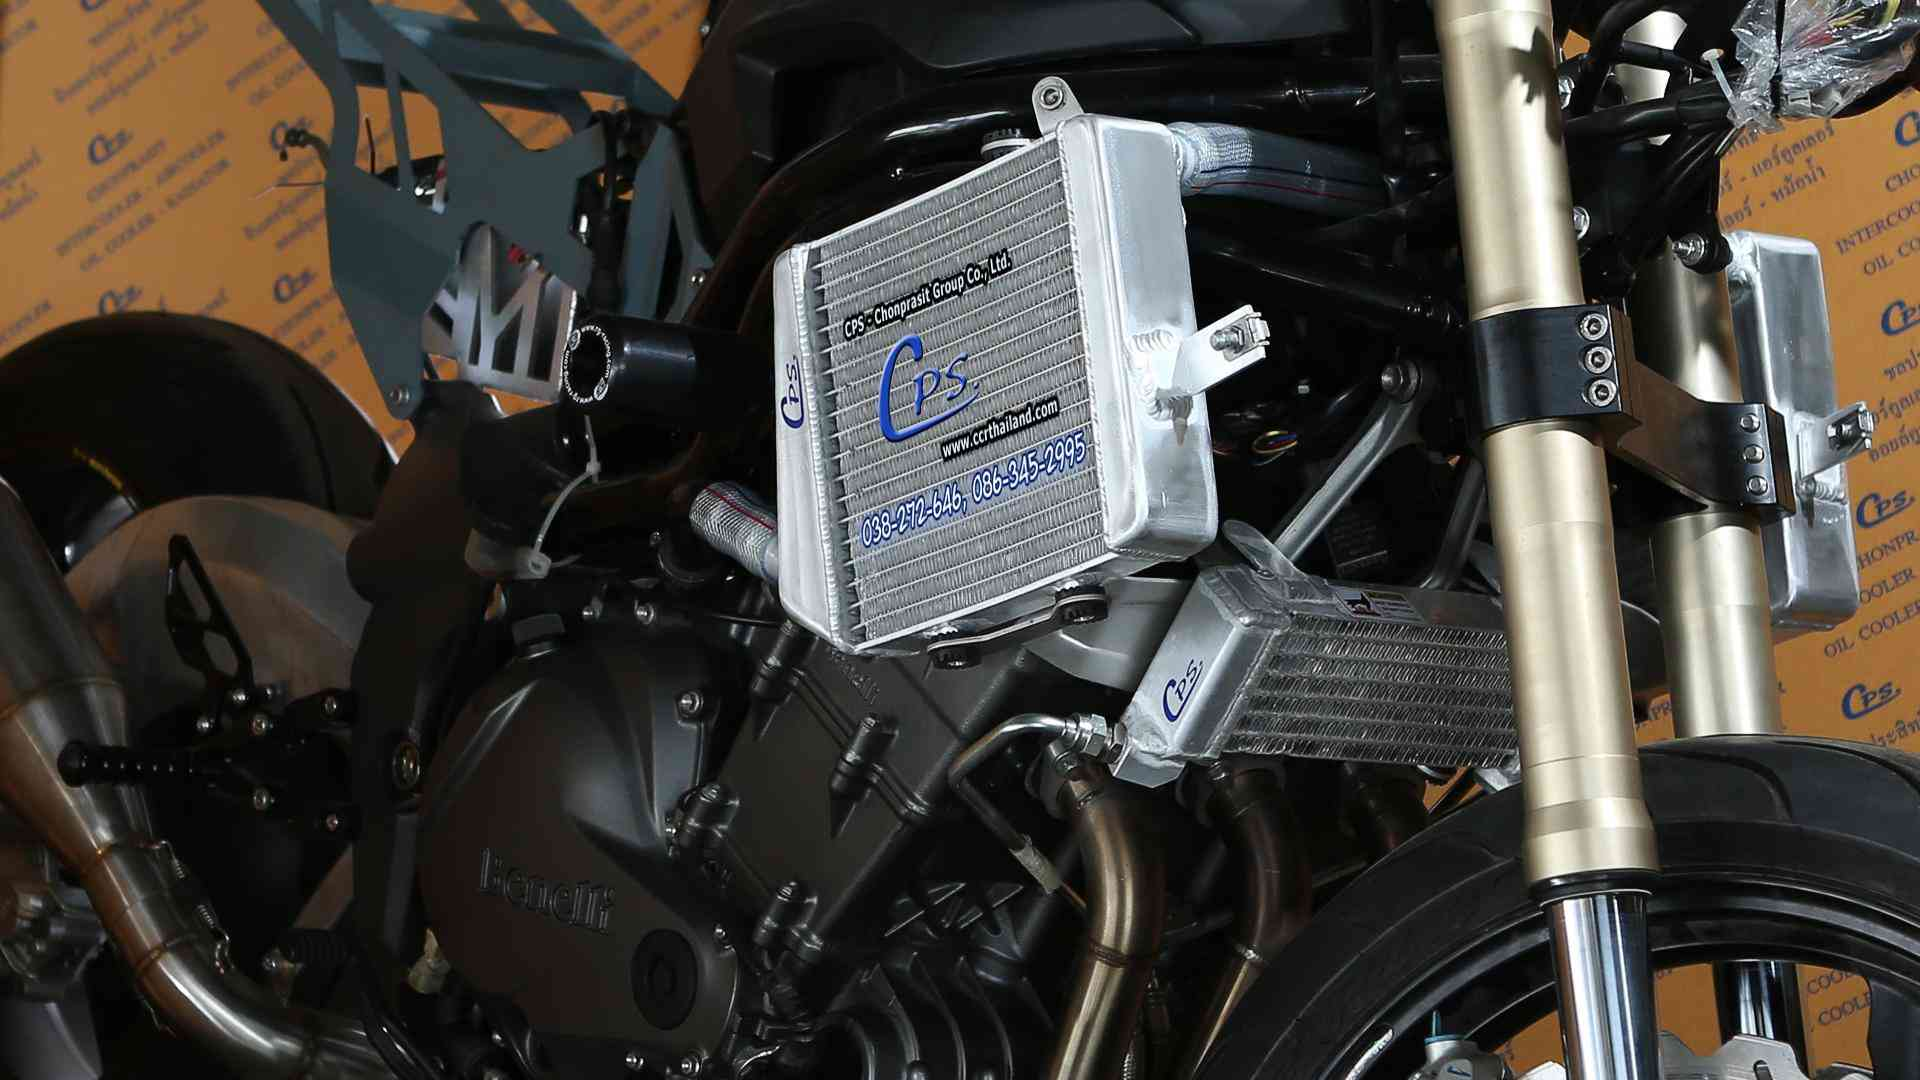 CPS motorcycle radiator for benelli motorcycle with oil cooler